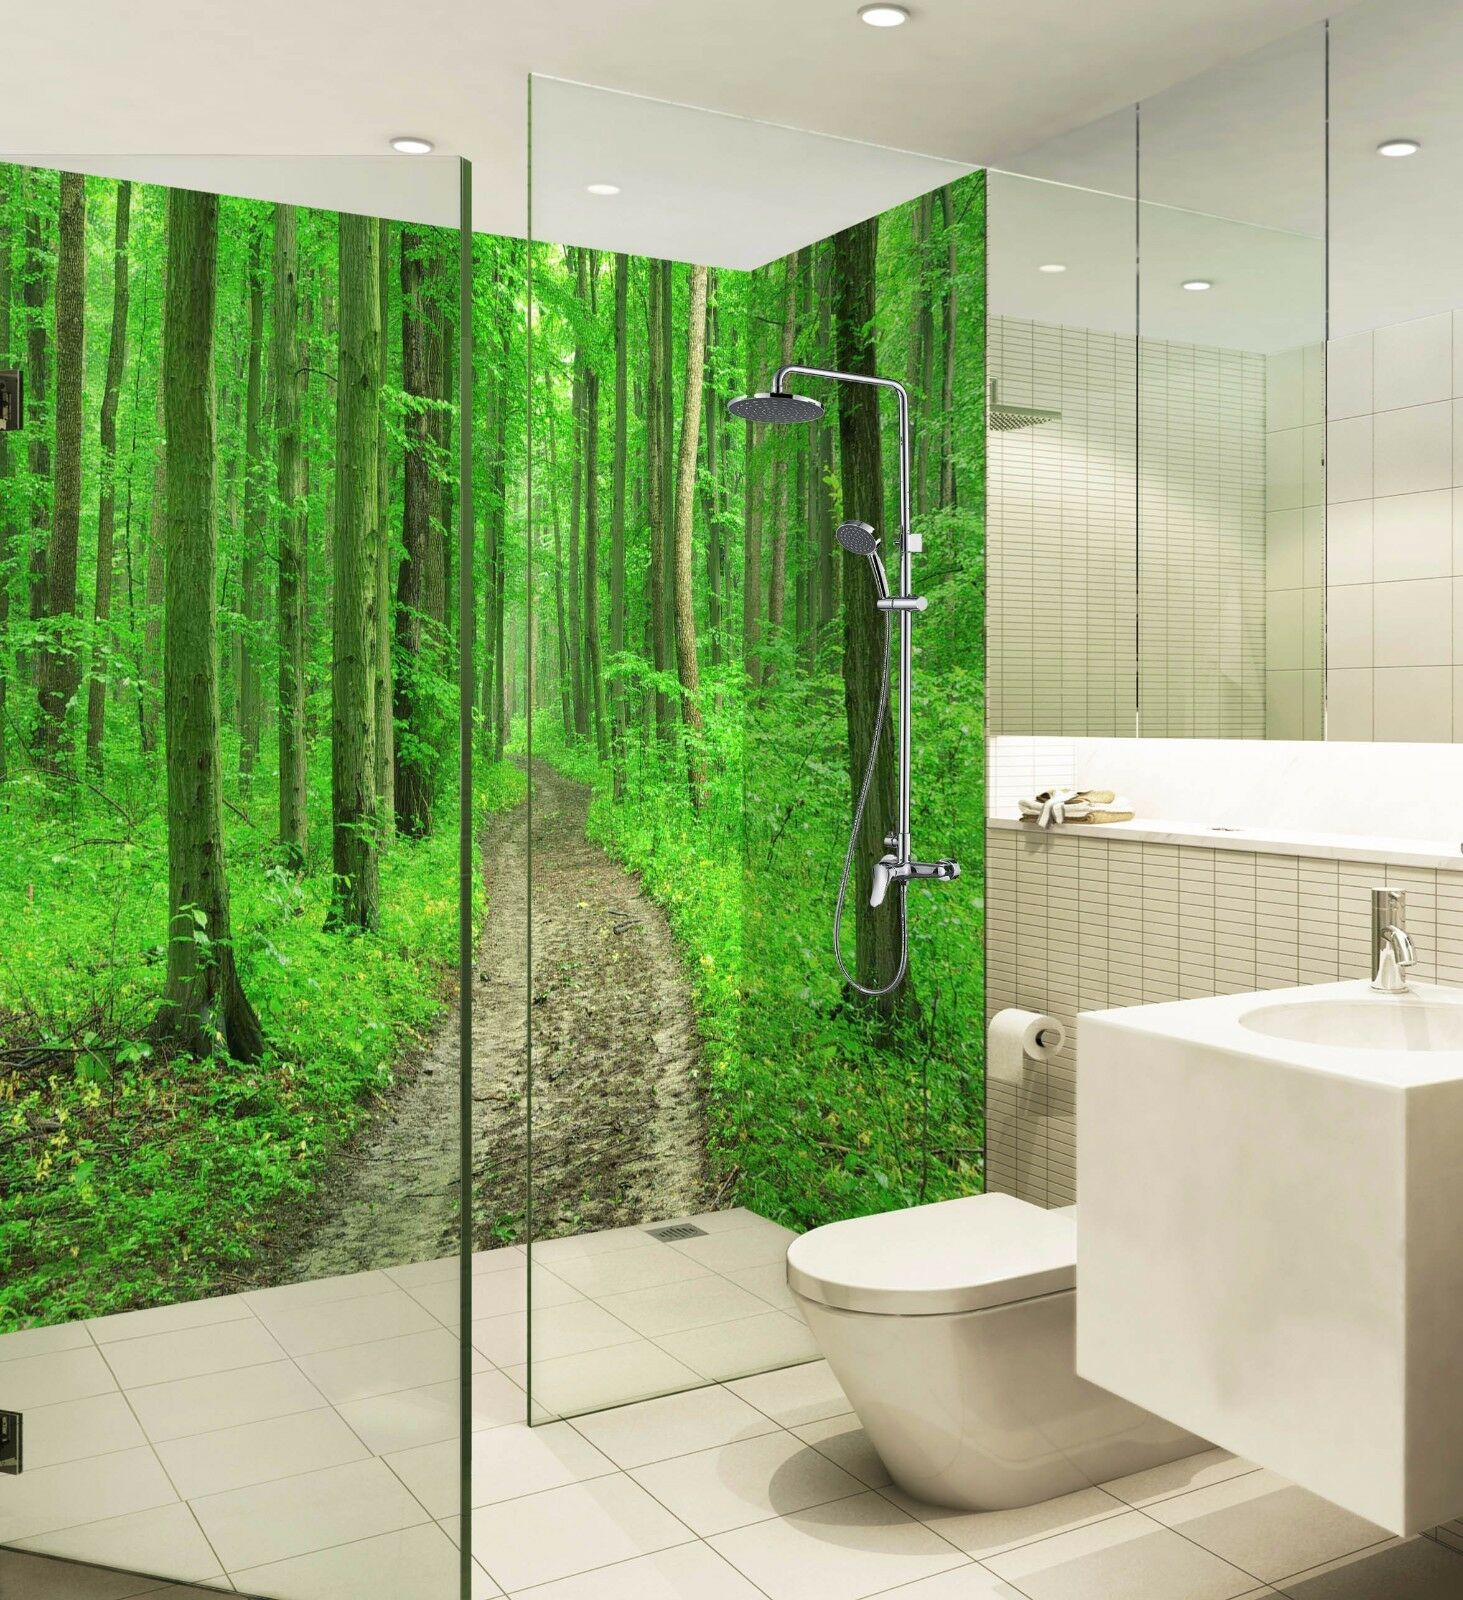 3D Grün Forest Road WallPaper Bathroom Print Decal Wall Deco AJ WALLPAPER UK